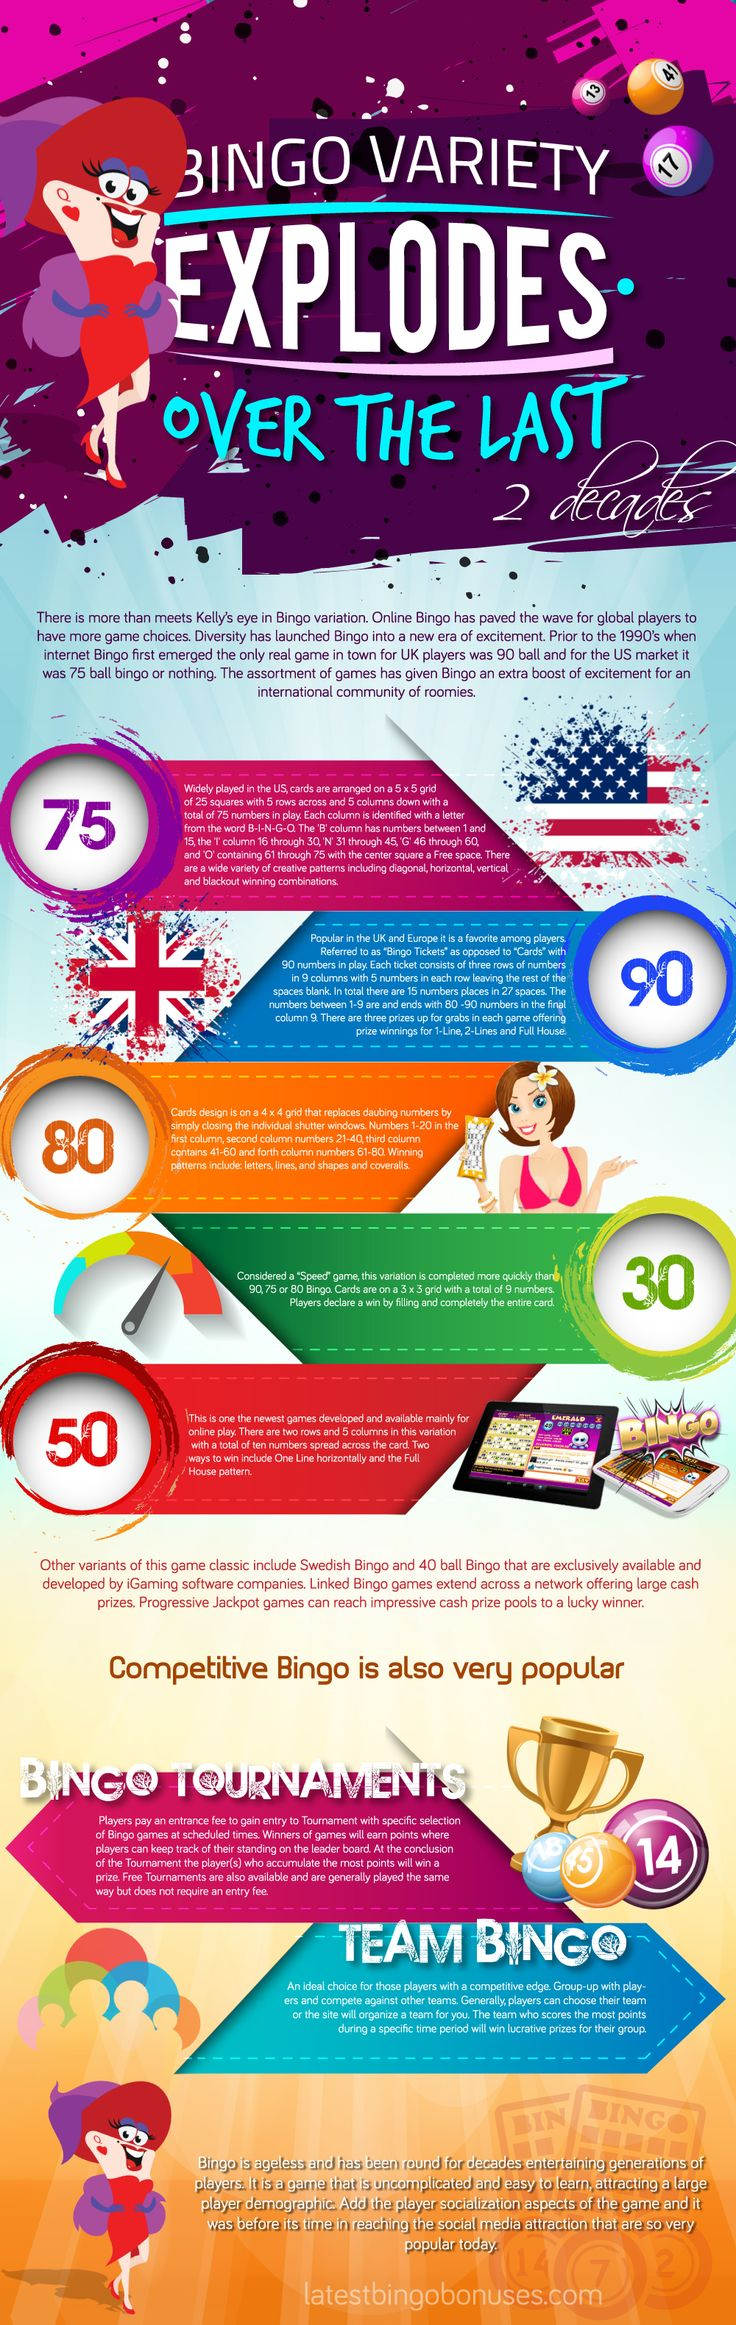 1136 best infographics images on pinterest infographic bingo variety explodes over the last two decades fandeluxe Choice Image